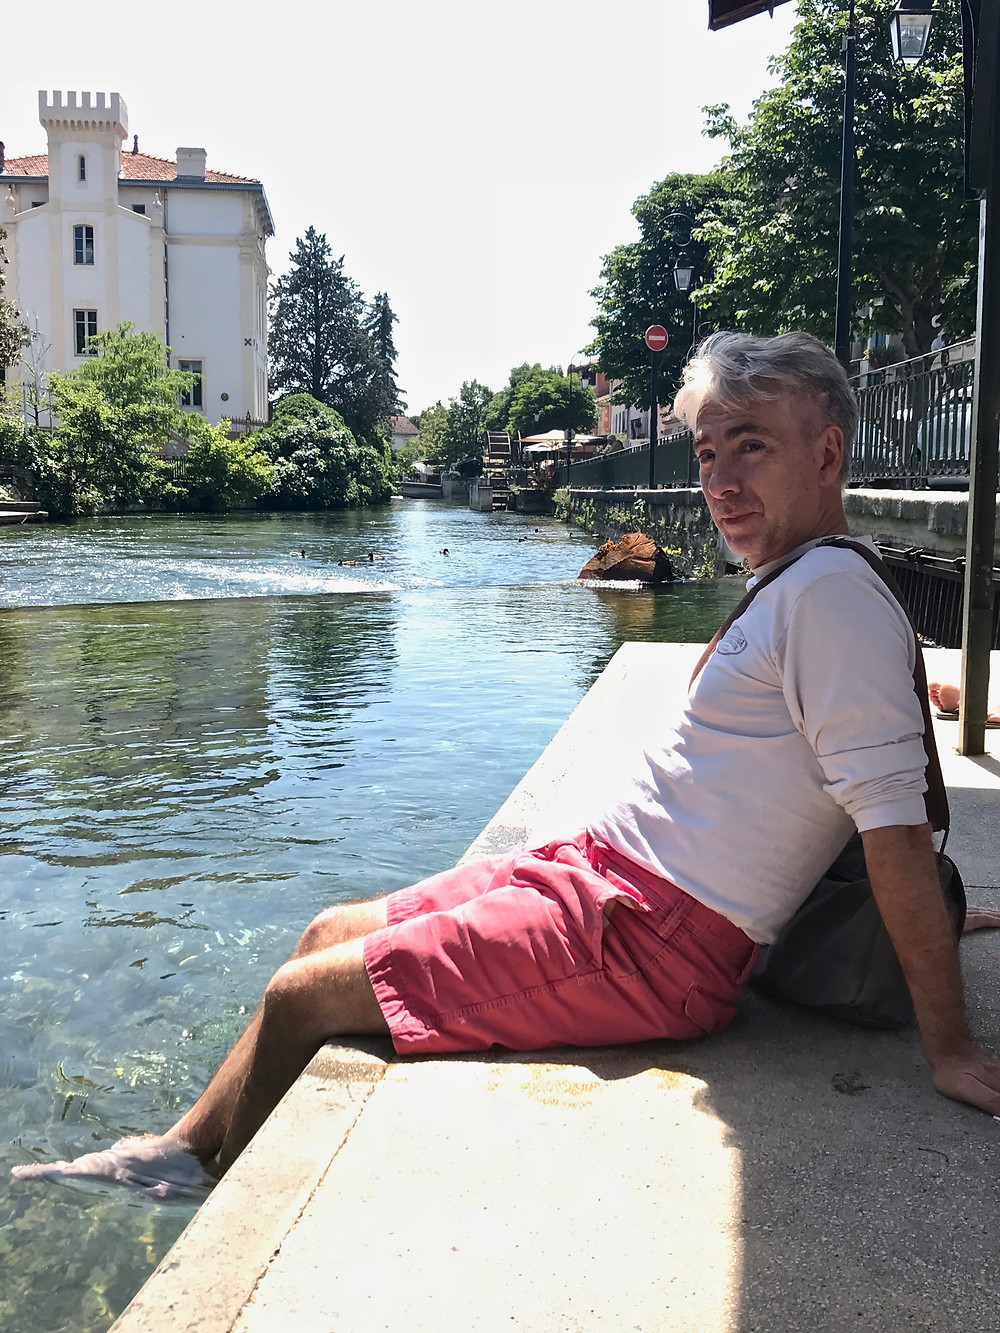 my travel partner cooling off on a hot June day in Isle sur la Sorgue